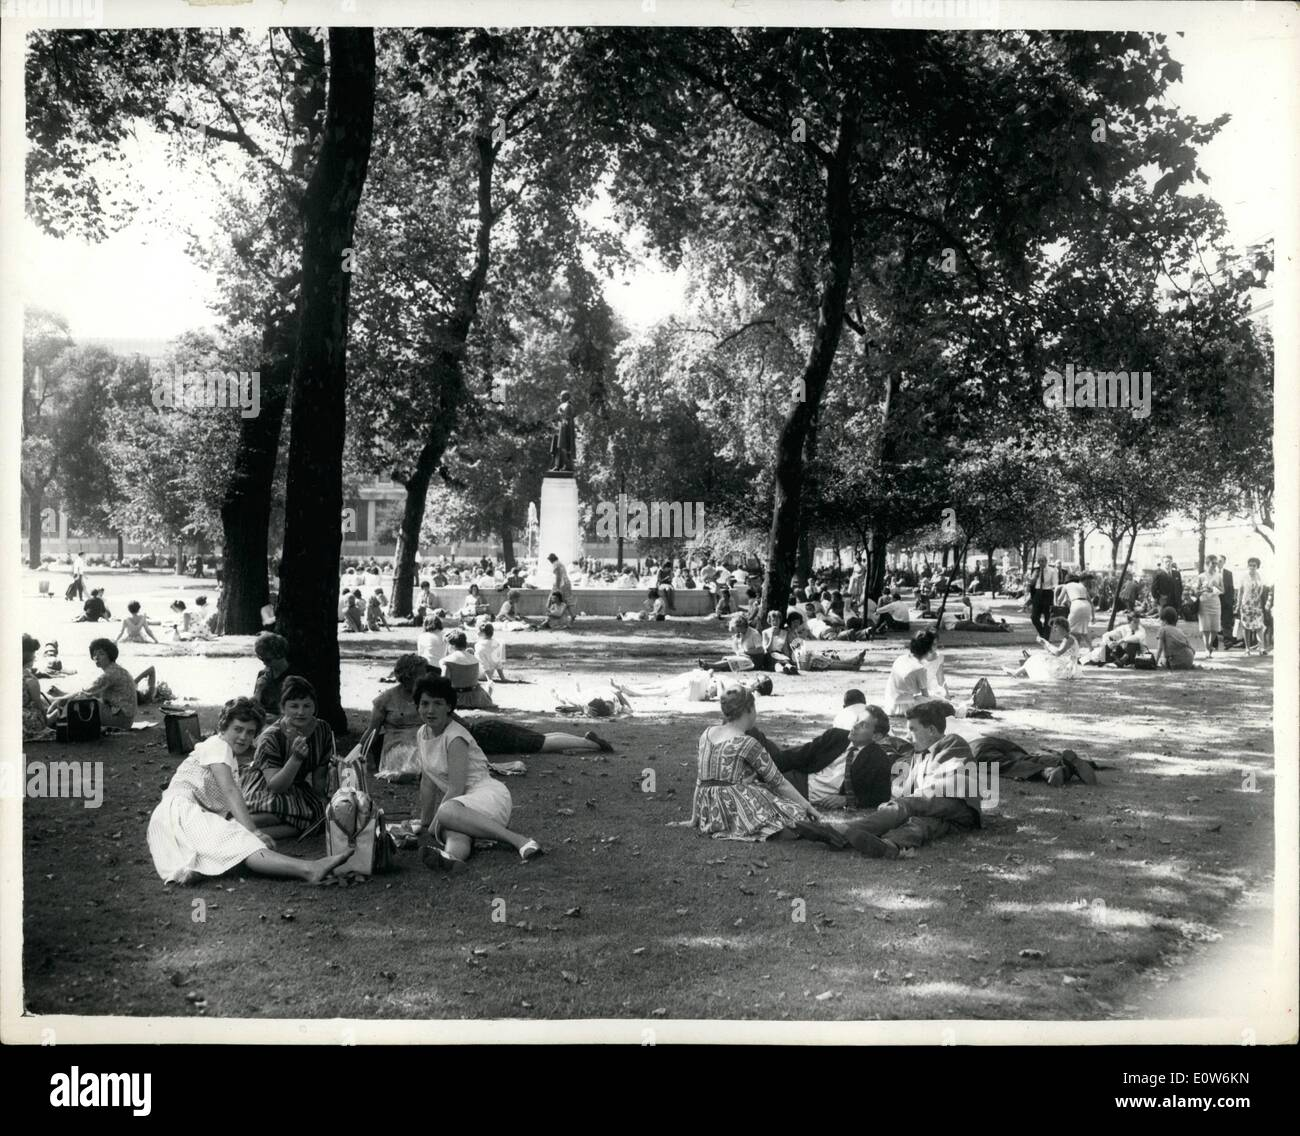 Aug. 08, 1961 - Hot Weather Comes Back To London: After weeks of dismally poor weather, it seems that warmer temperatures have returned - however temporarily - to London. Photo shows Londoners sitting in Grosvenor Square, Mayfair, today as the mercury once again started its upward climb. - Stock Image